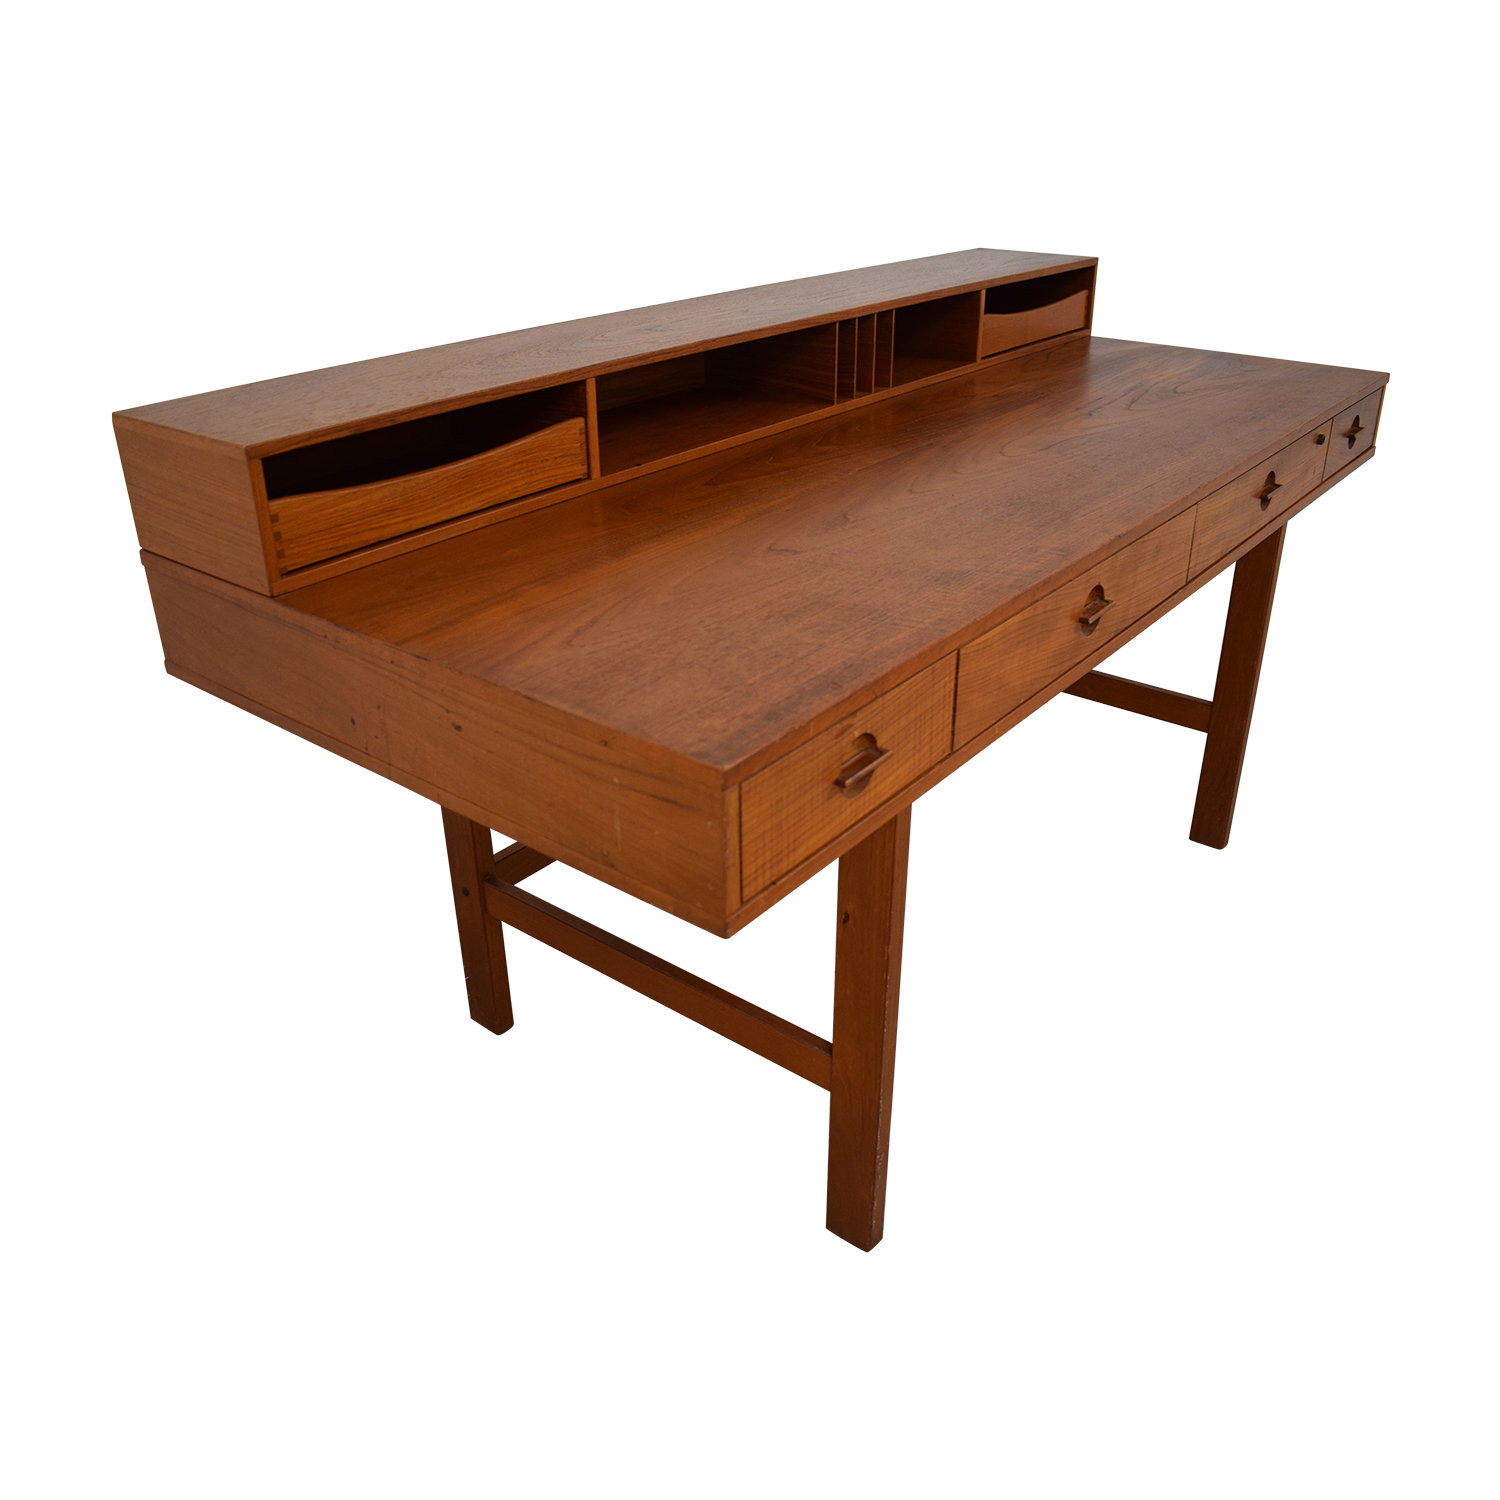 buy Løvig Peter Lovig Nielsen By Jens Quistgaard Flip-Top Desk in Teak online